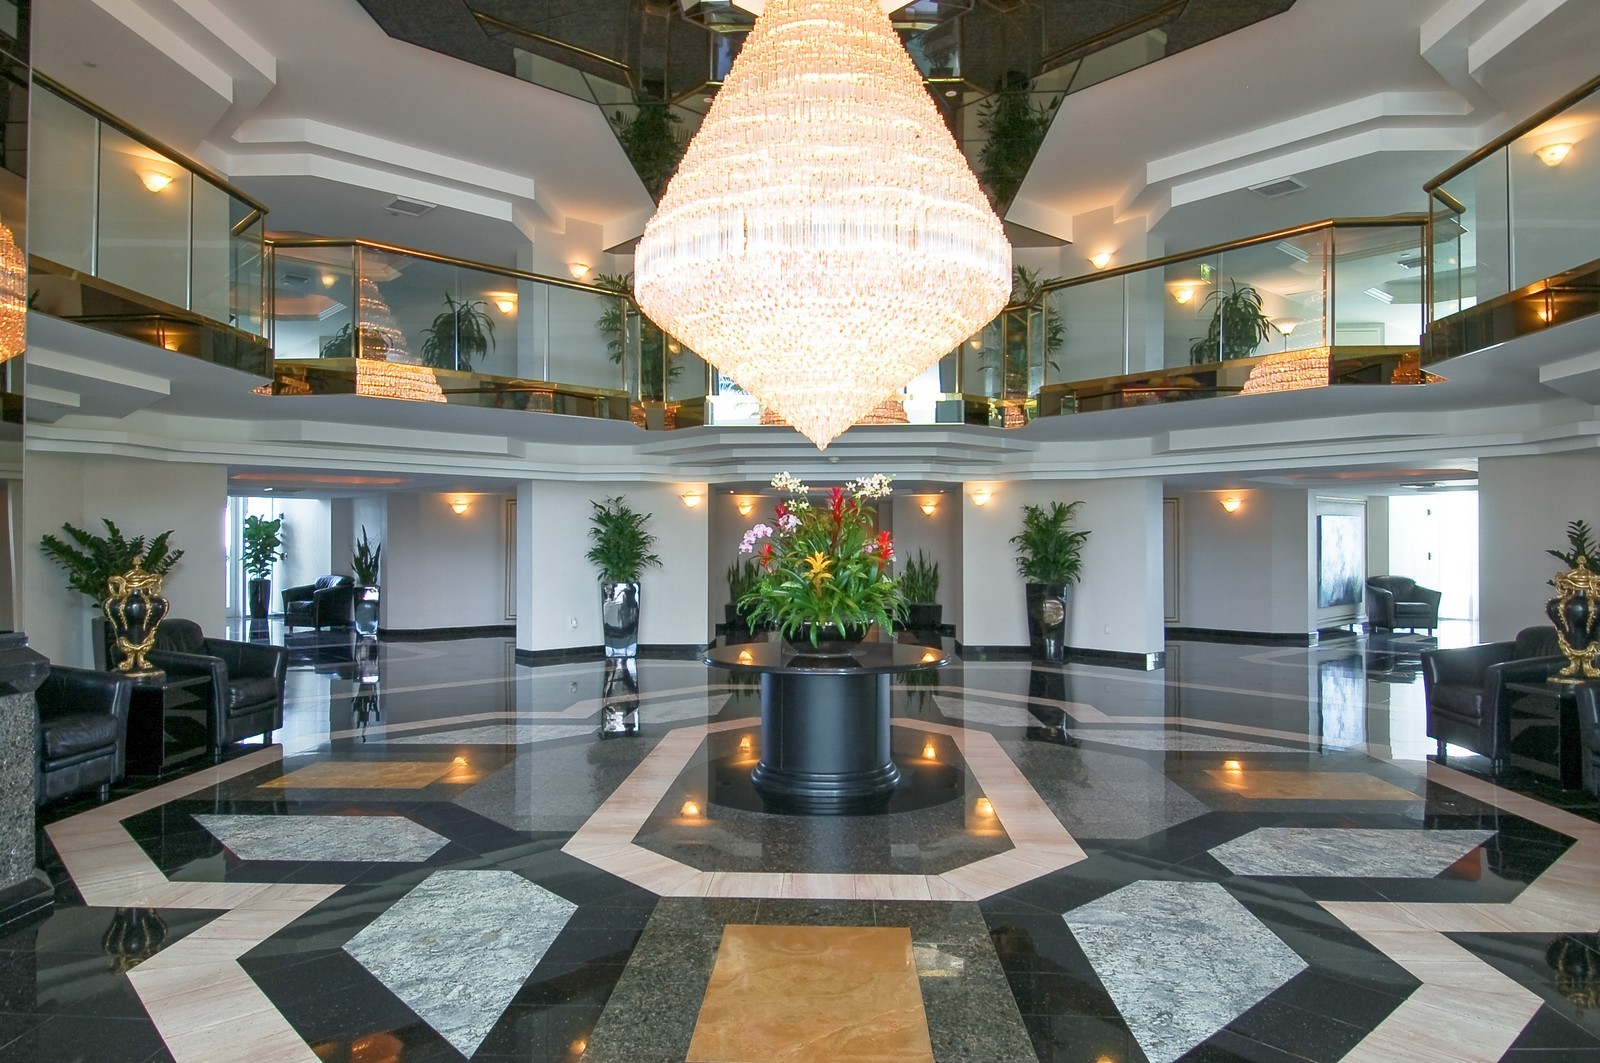 Real Estate Photography - 1700 S Ocean Blvd, 22C, Lauderdale by the Sea, FL, 33062 - Lobby